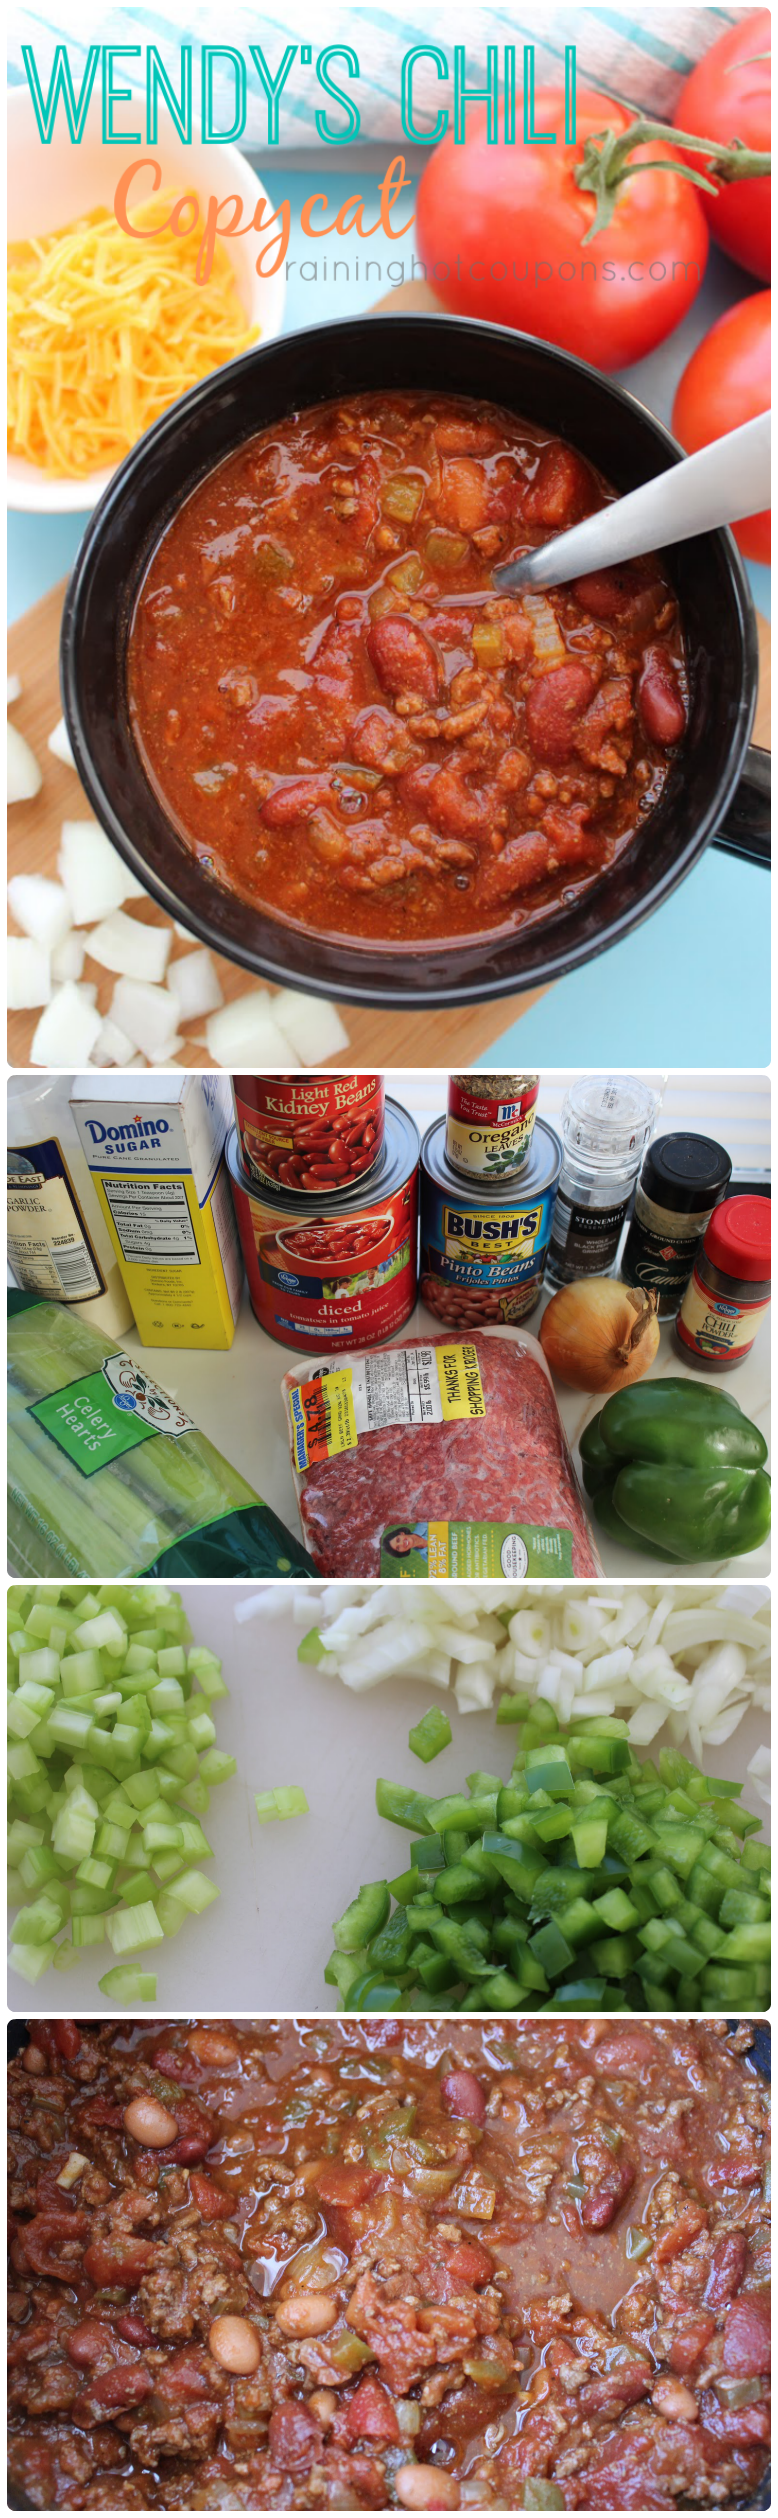 wendys chili collage Copycat Wendys Chili